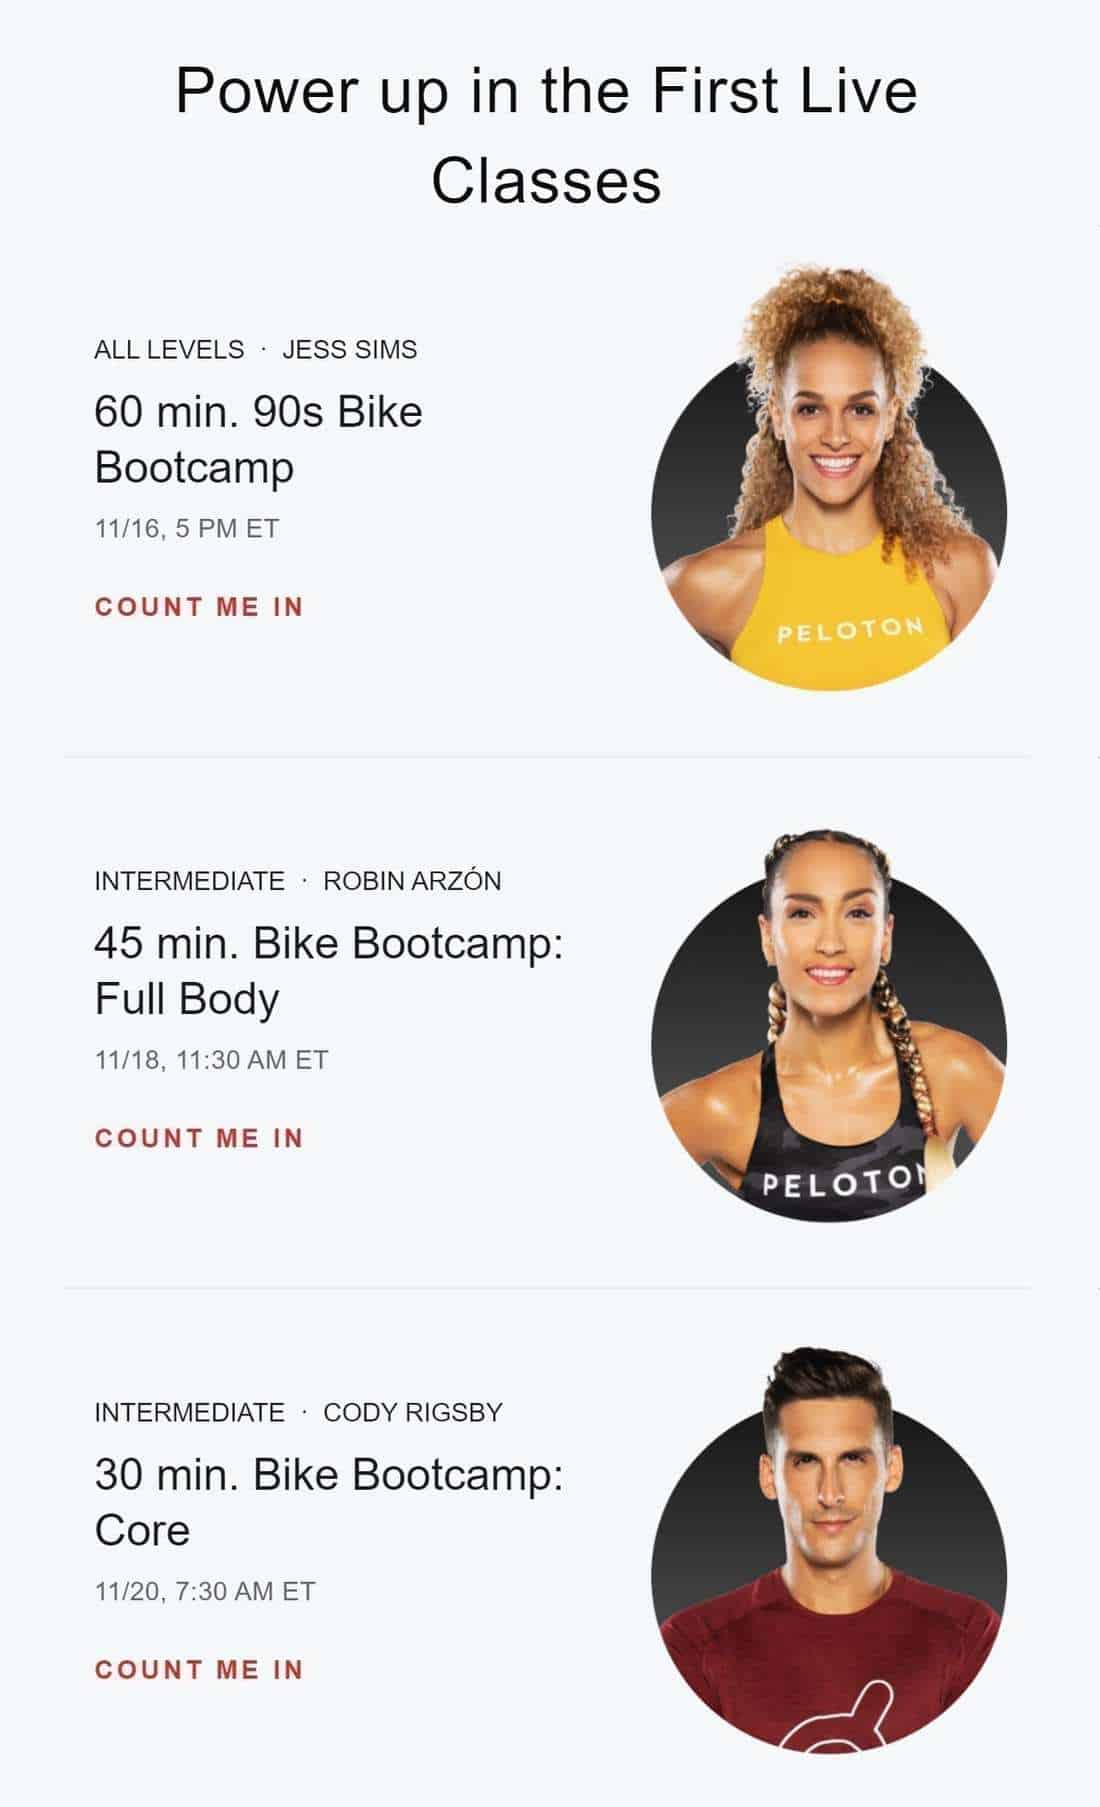 First Bike Bootcamp live classes by Peloton